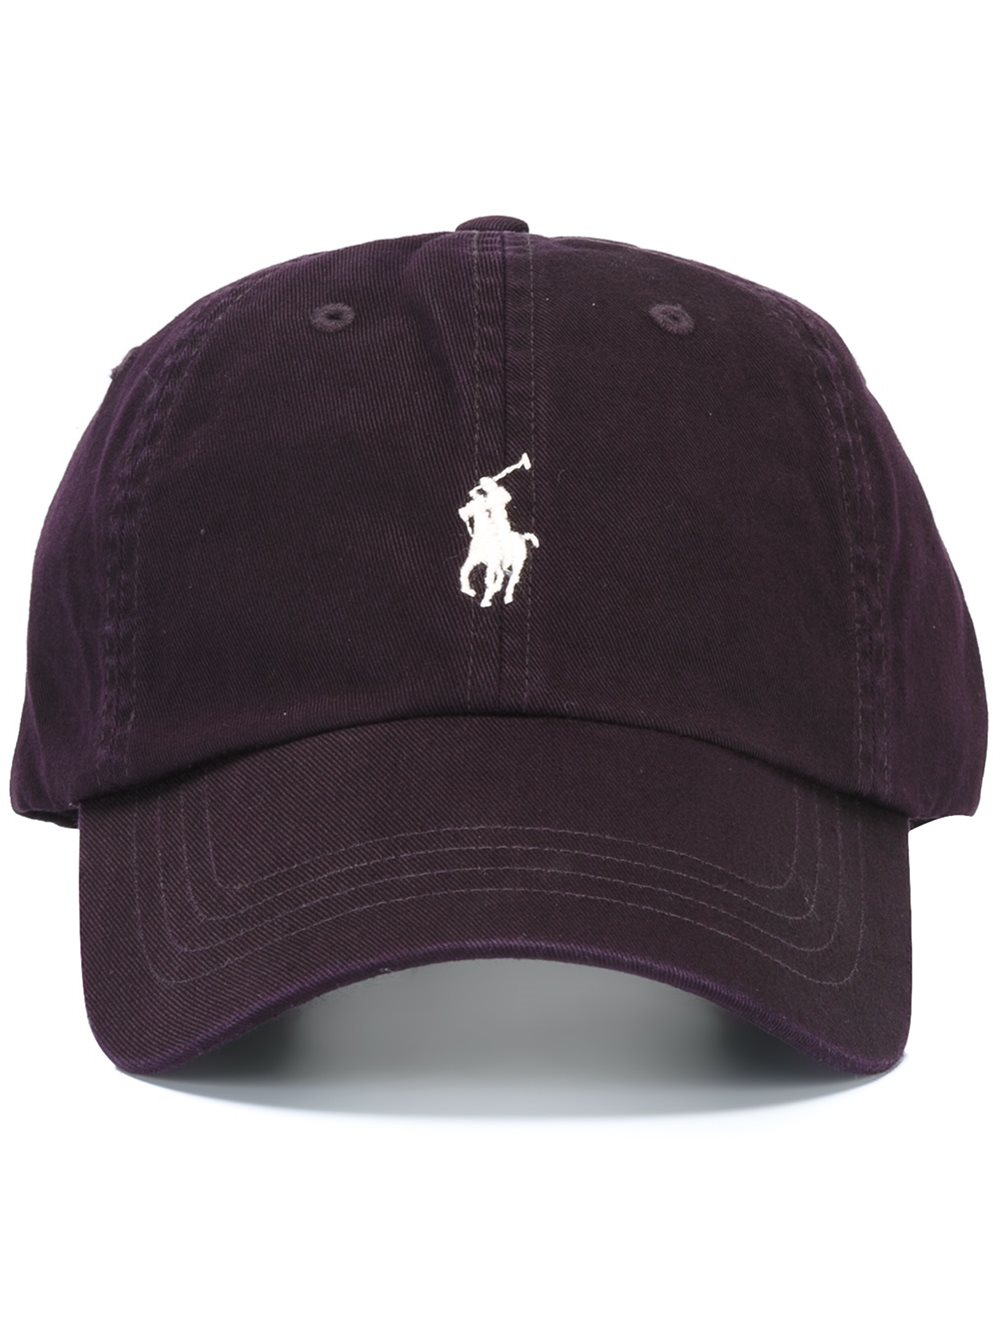 polo ralph lauren 39 fall plum 39 cap in pink for men lyst. Black Bedroom Furniture Sets. Home Design Ideas